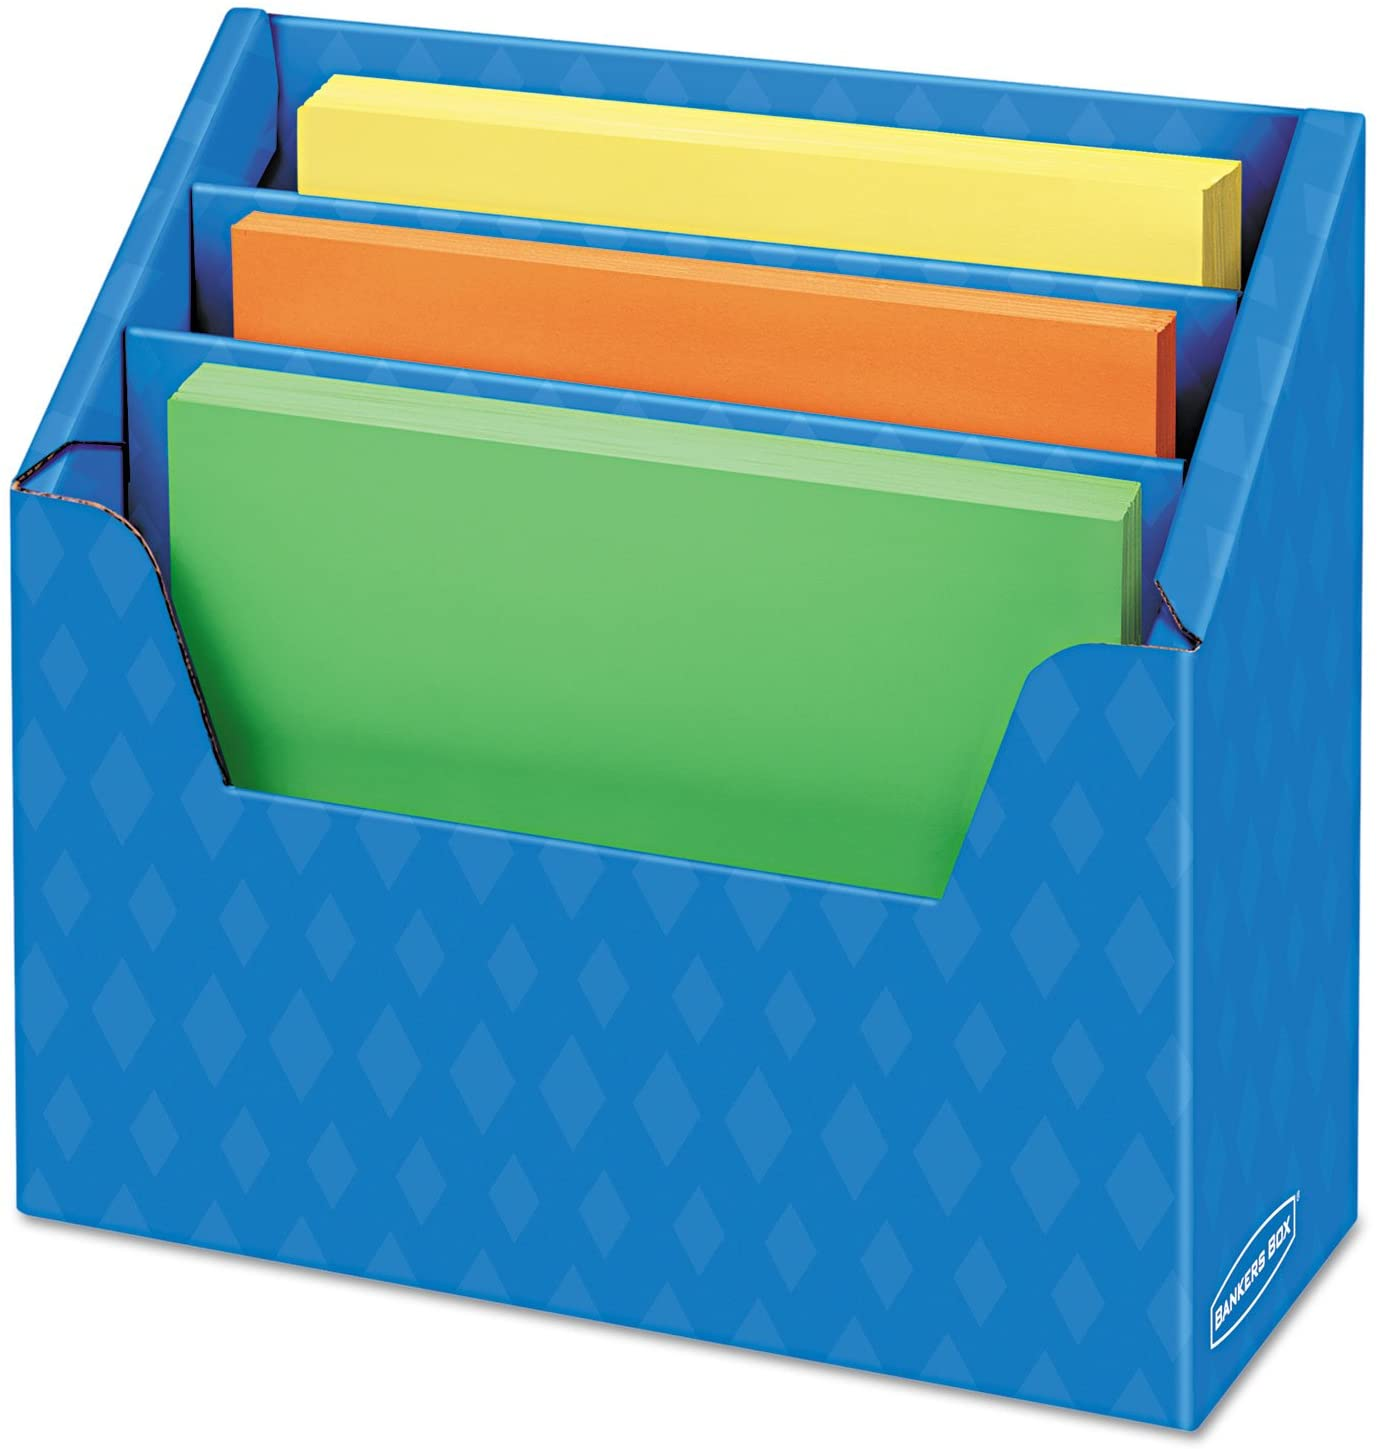 Bankers Box - Folder Holder with Compartment Organizer, 12 1/2 x 9 x 5 5/8, Blue